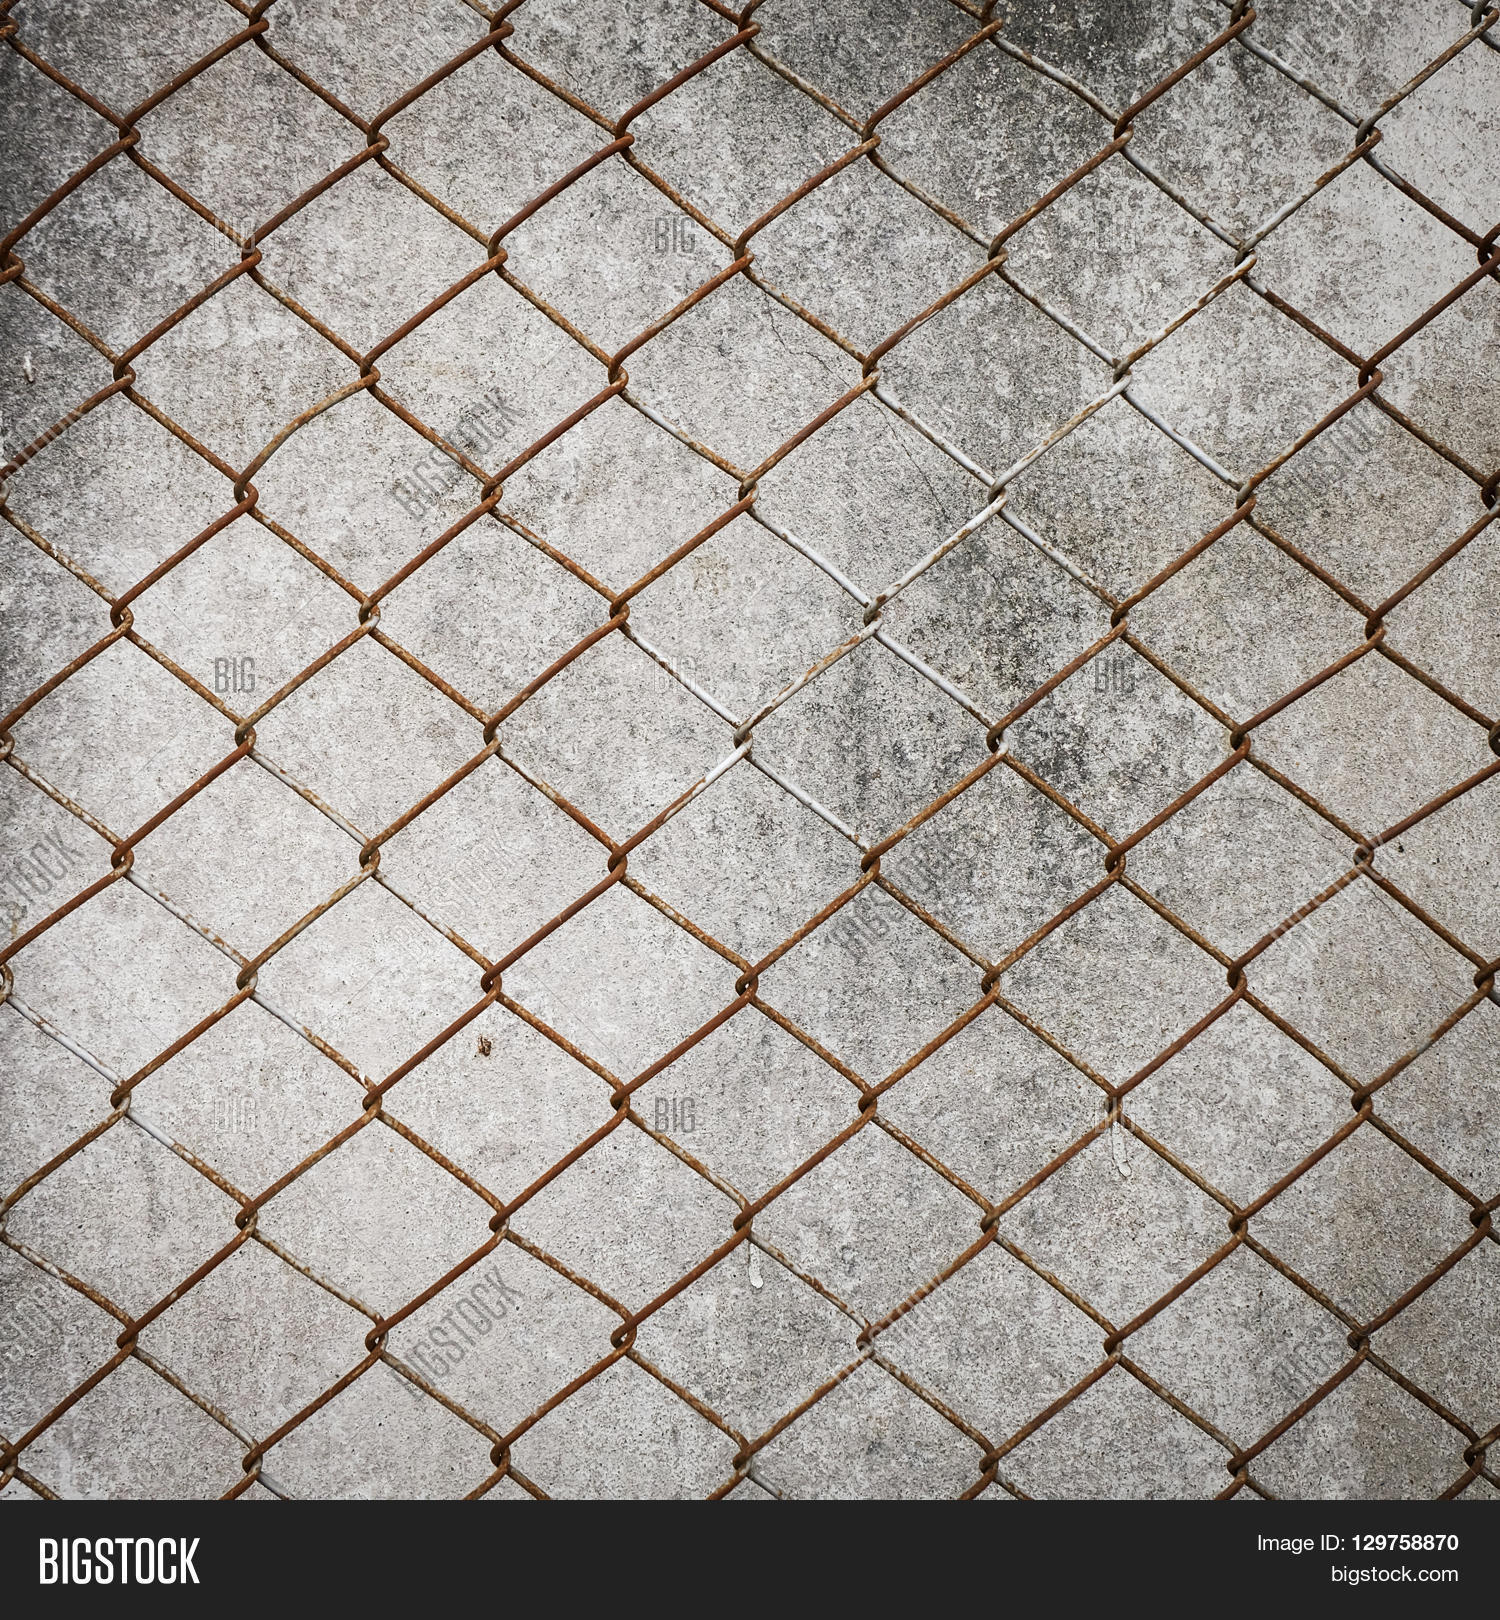 Rusty Iron Chain Wire Image & Photo (Free Trial) | Bigstock